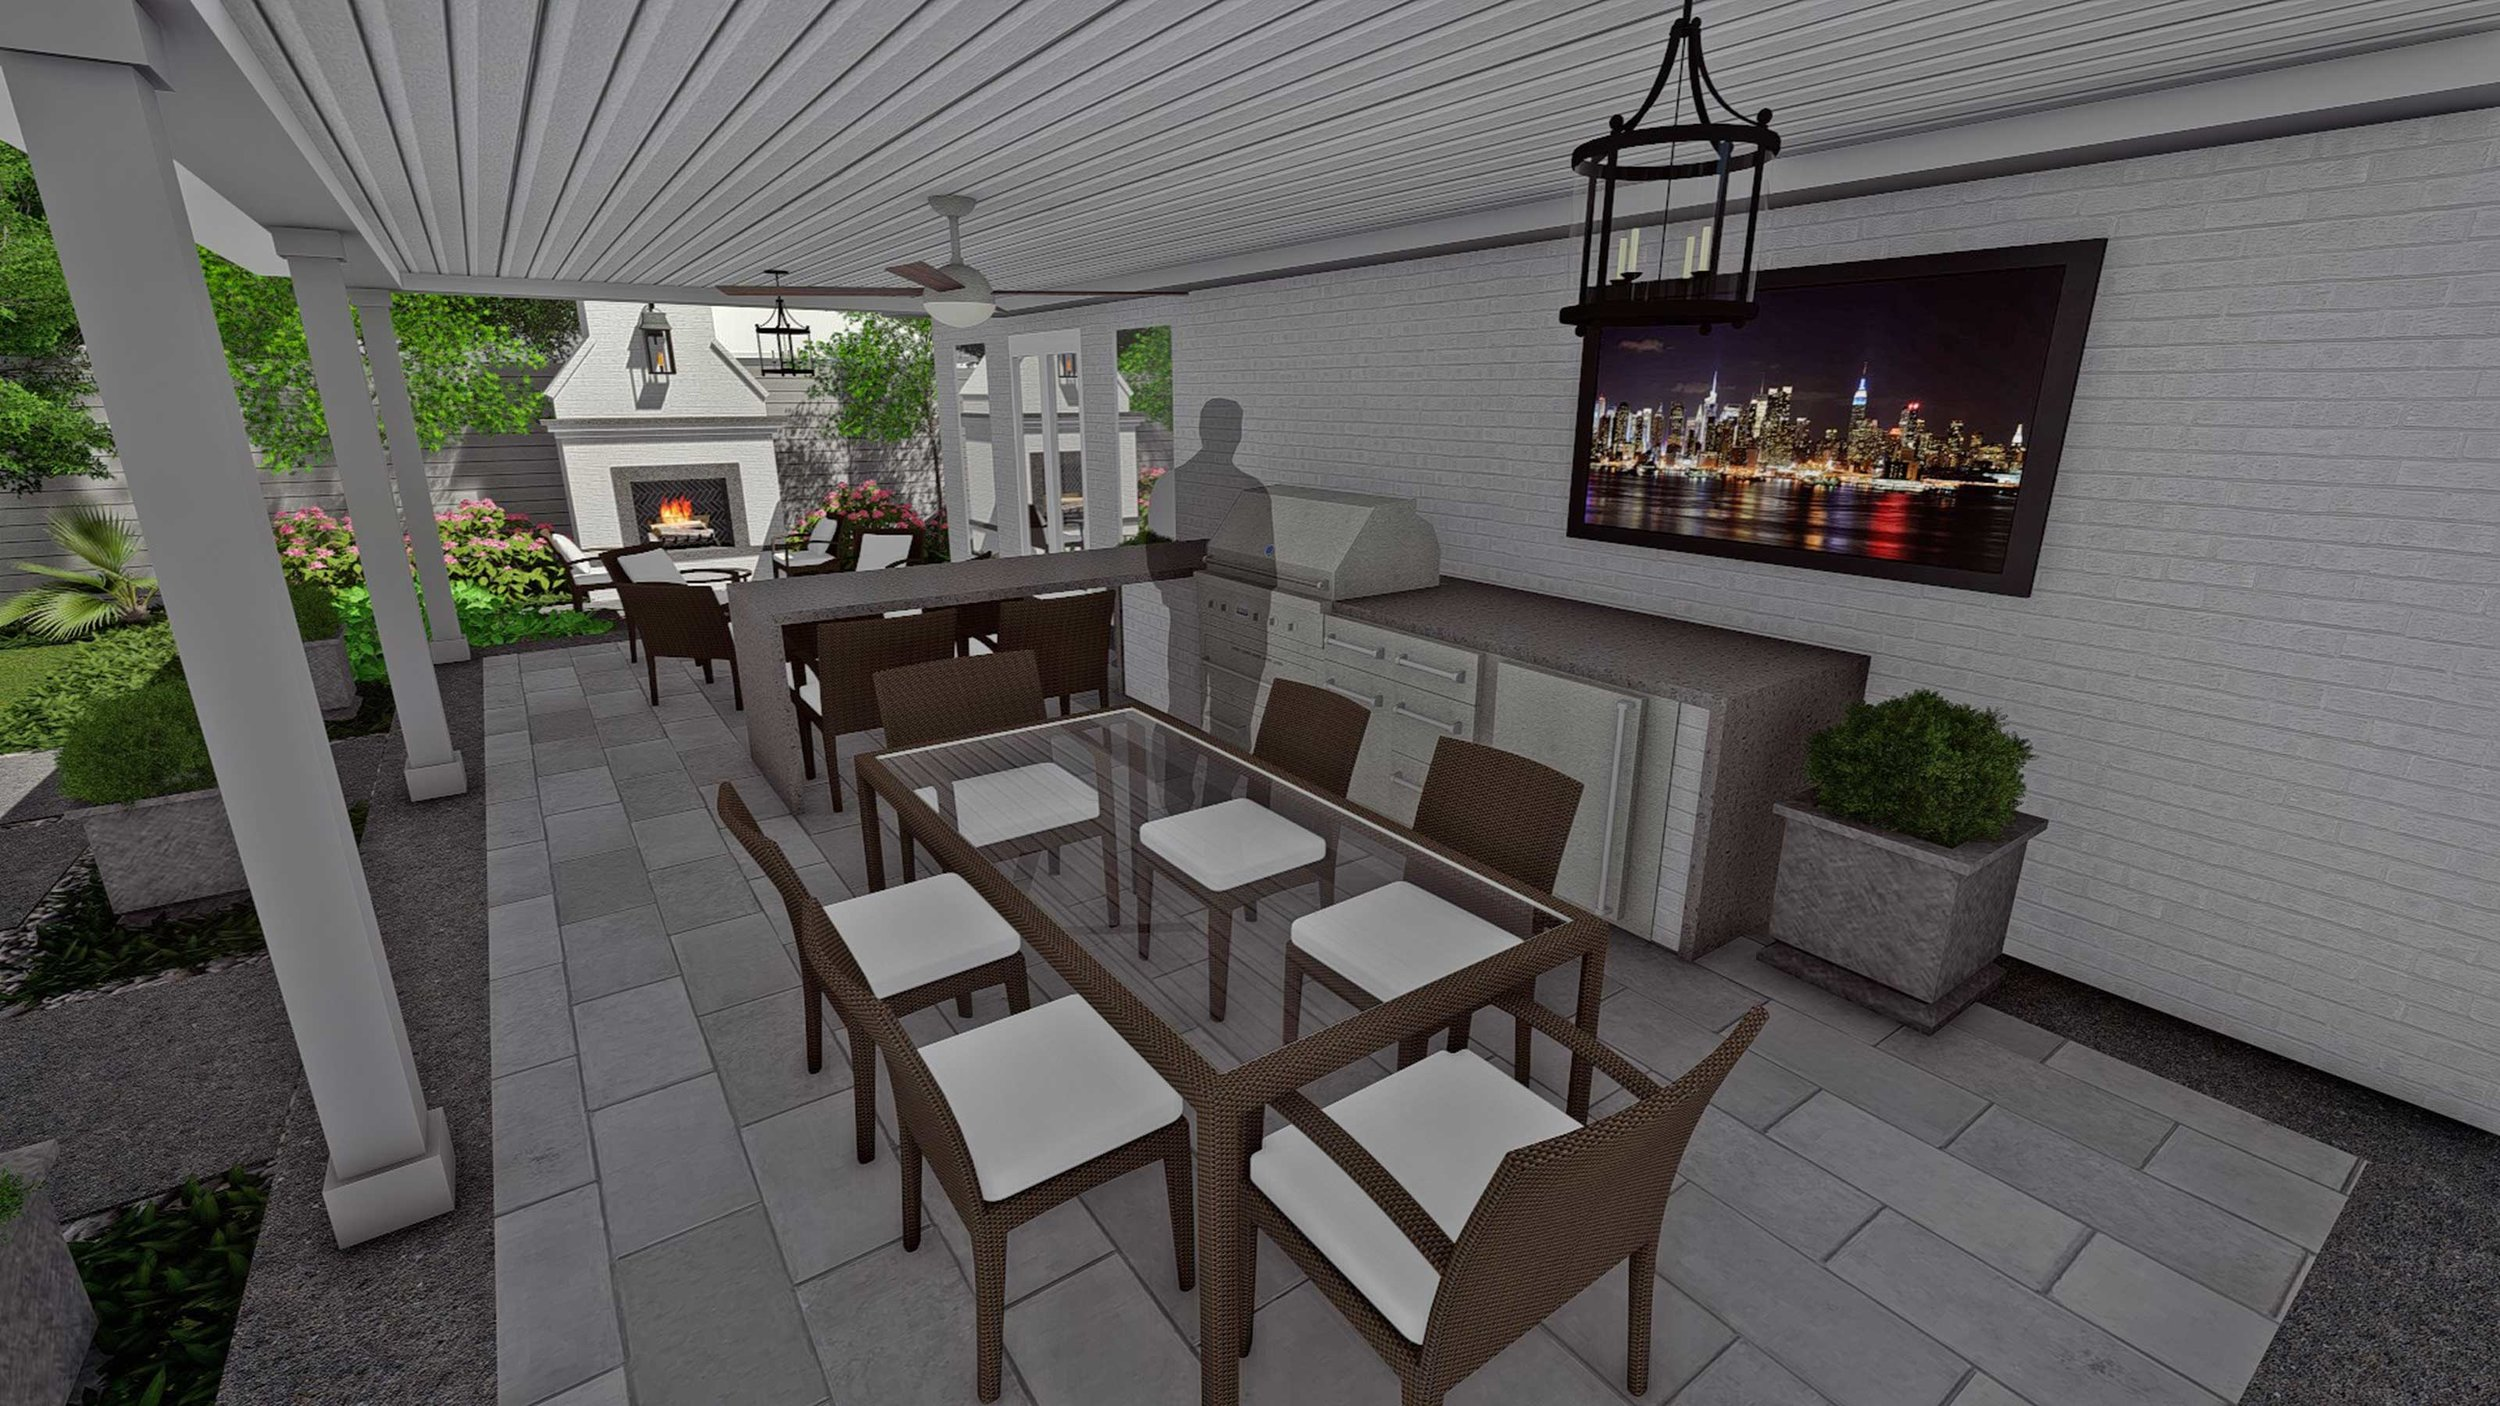 Covered Patio & Outdoor Living Area